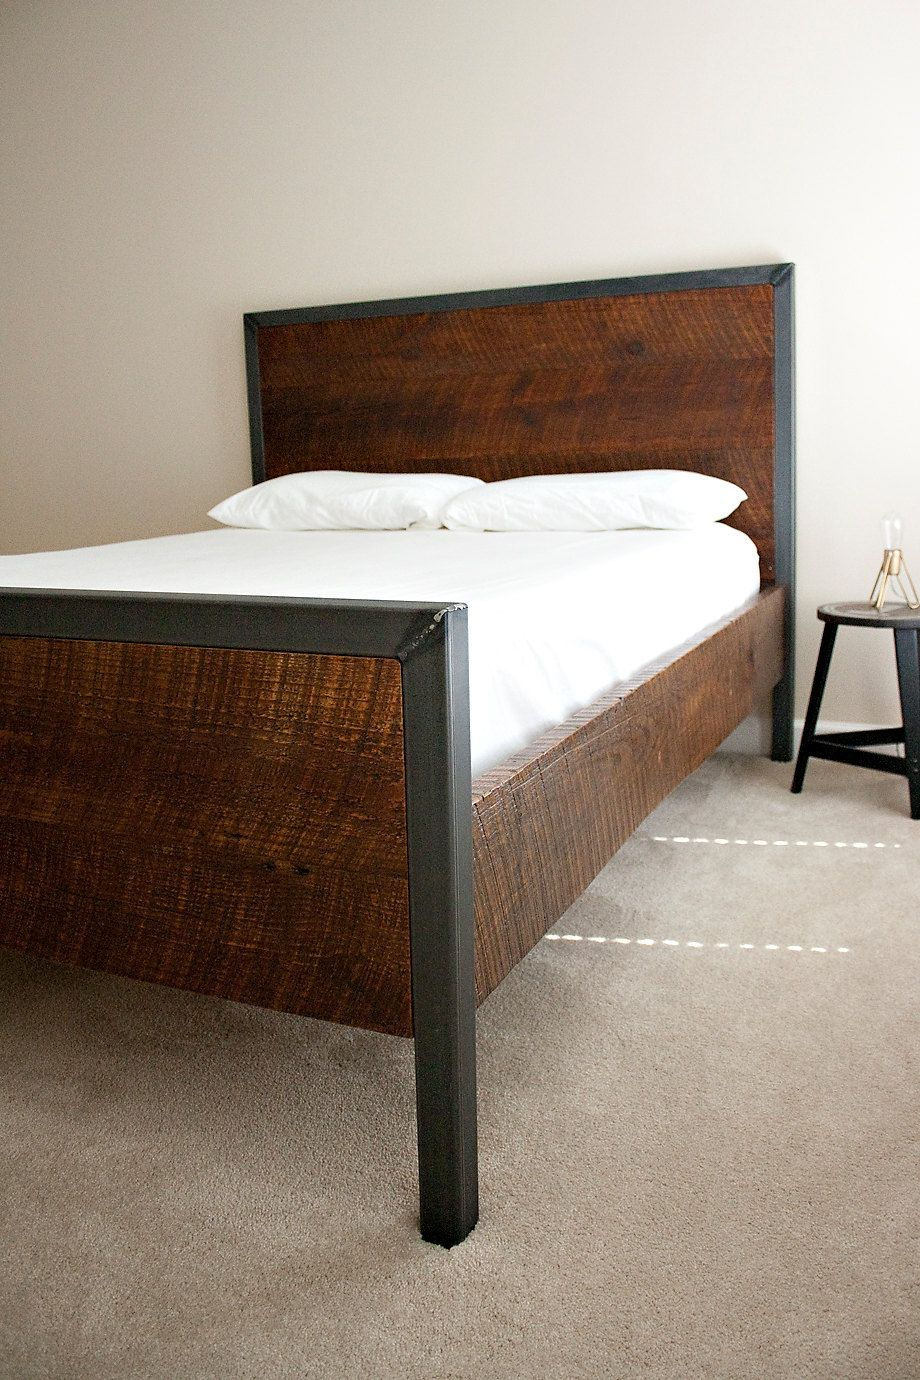 raw steel furniture. Modern King Bed - Reclaimed Wood And Raw Steel- Dylan Design Co.. $2,680.00 Steel Furniture R